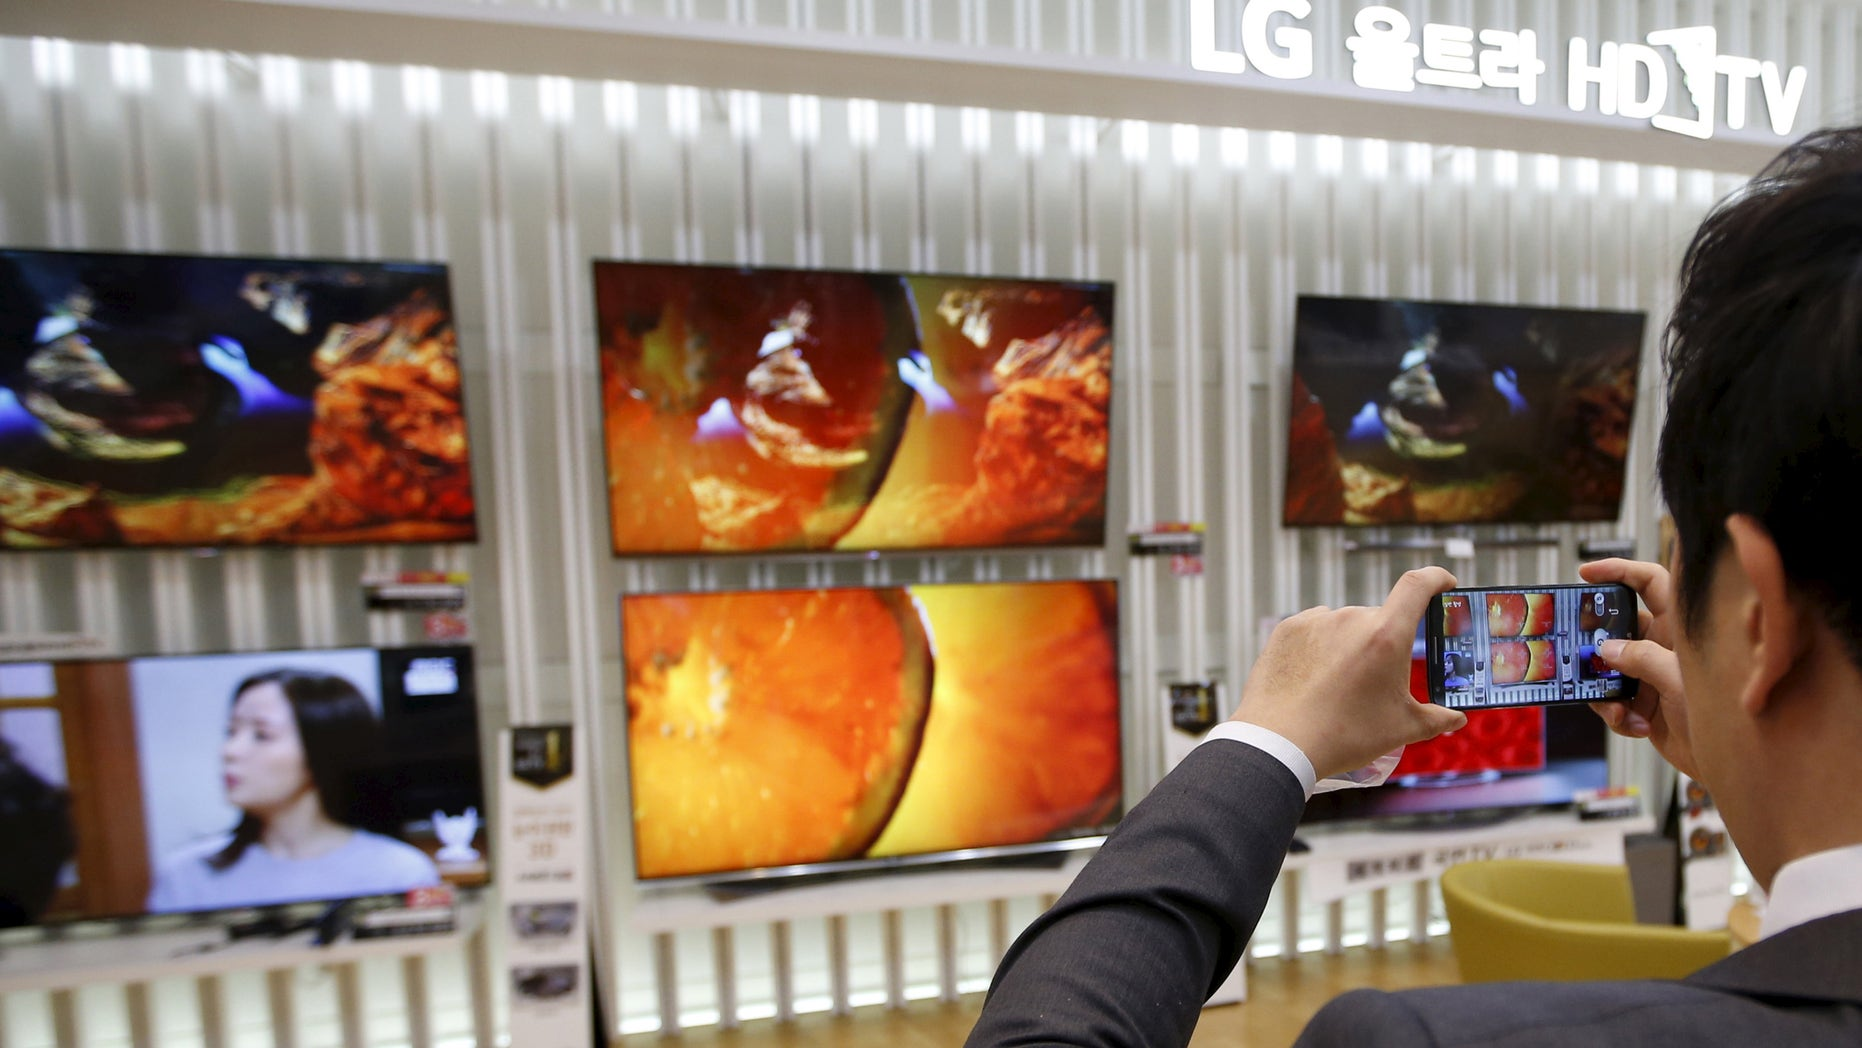 File photo: An employee takes photographs of LG Electronics' organic light-emitting diode (OLED) TV sets, which are made with LG Display flat screens, at its store in Seoul January 28, 2015. (REUTERS/Kim Hong-Ji)